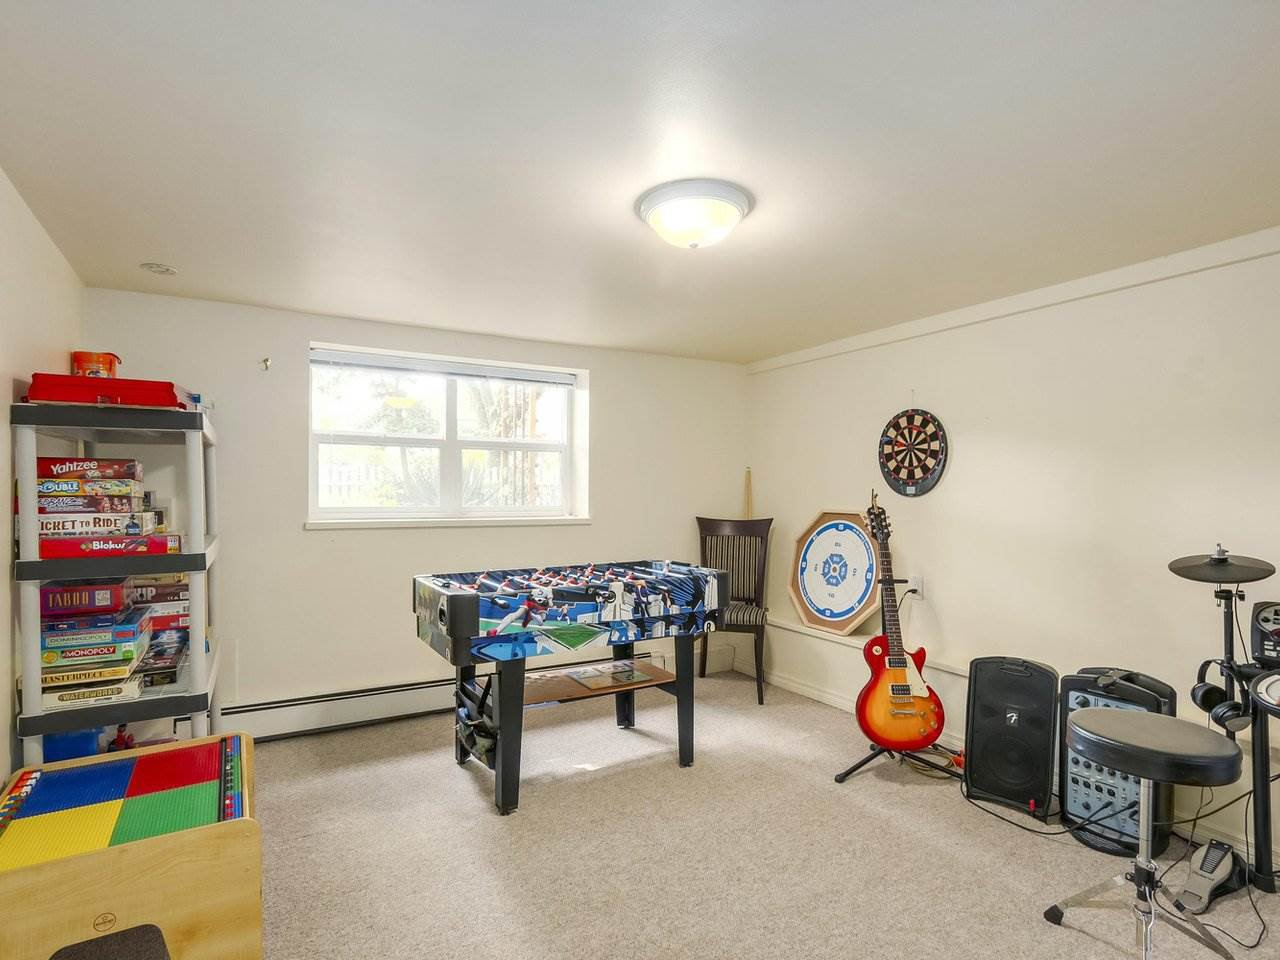 Photo 19: Photos: 1761 E 13TH AVENUE in Vancouver: Grandview VE House for sale (Vancouver East)  : MLS®# R2202018